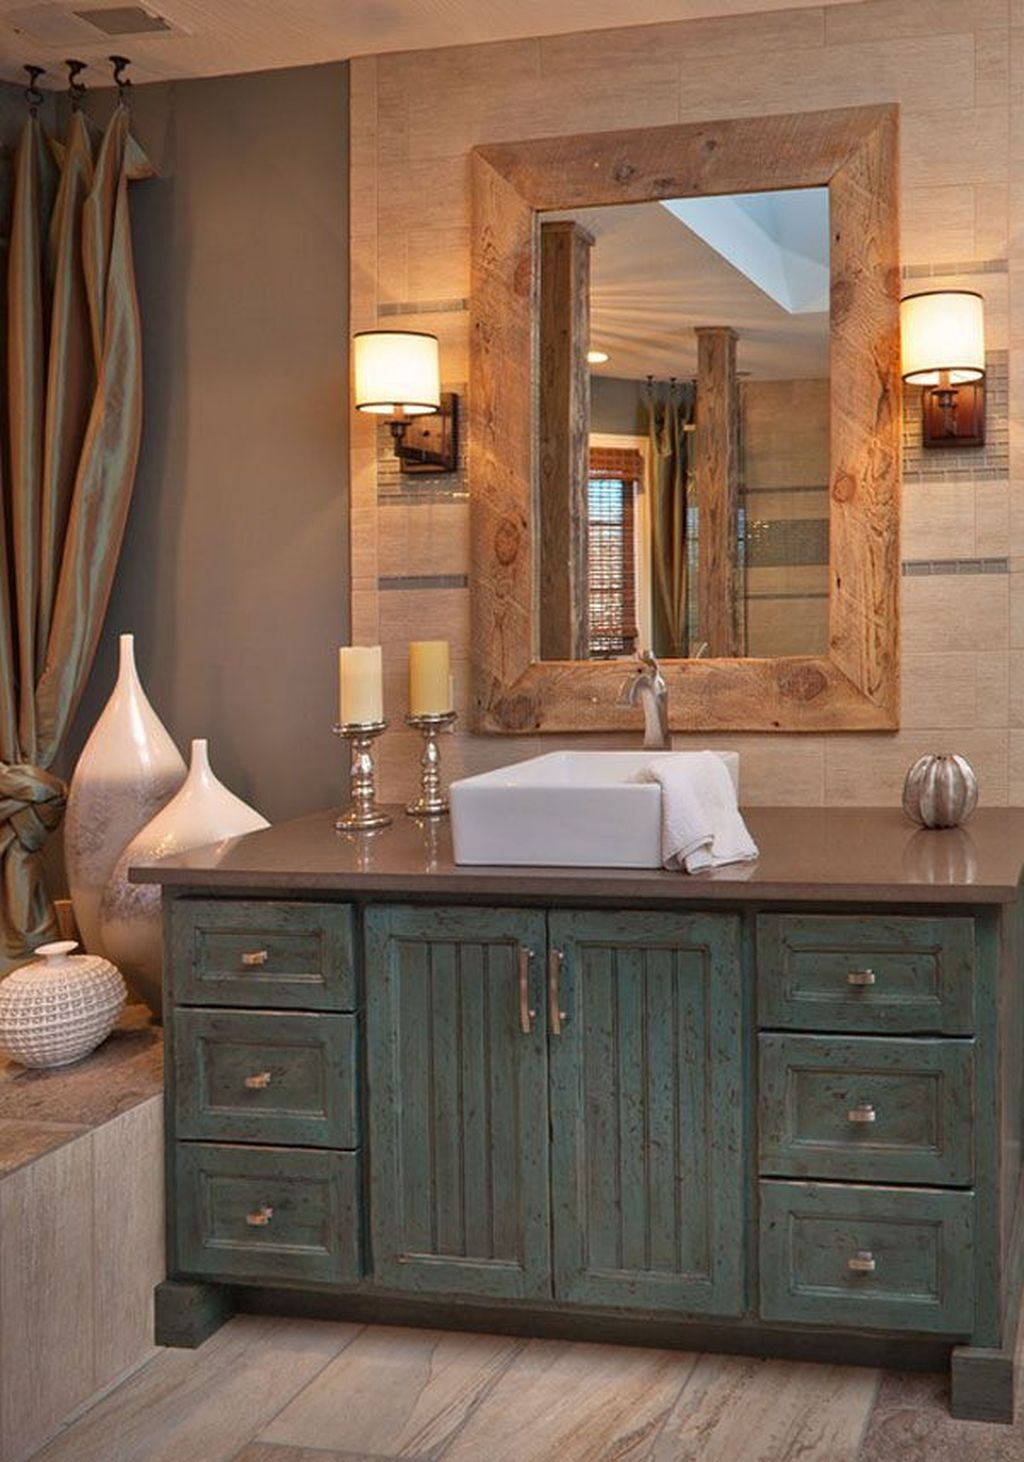 Stunning Bathroom Mirror Decor Ideas 29